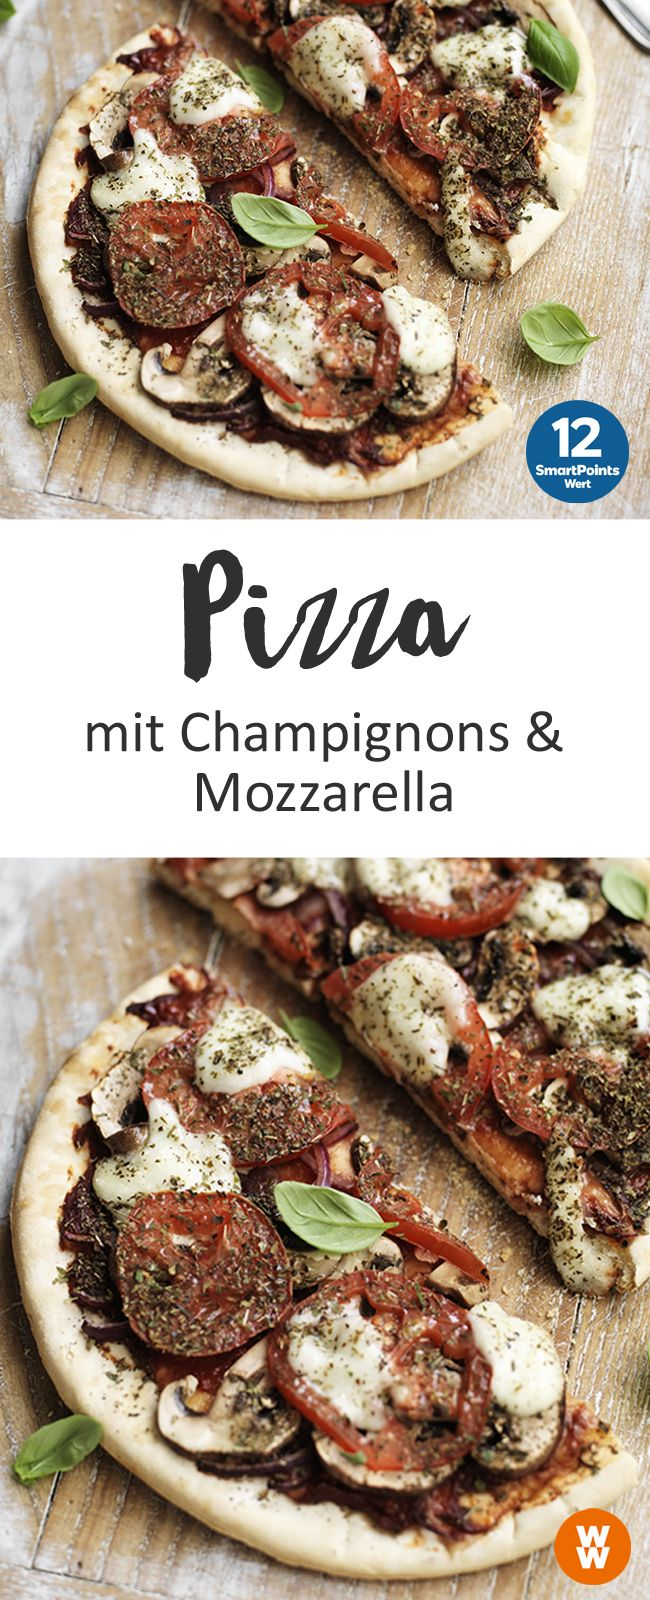 Pizza mit Champignons und Mozzarella | 4 Portionen, 12 SmartPoints/Portion, Weight Watchers